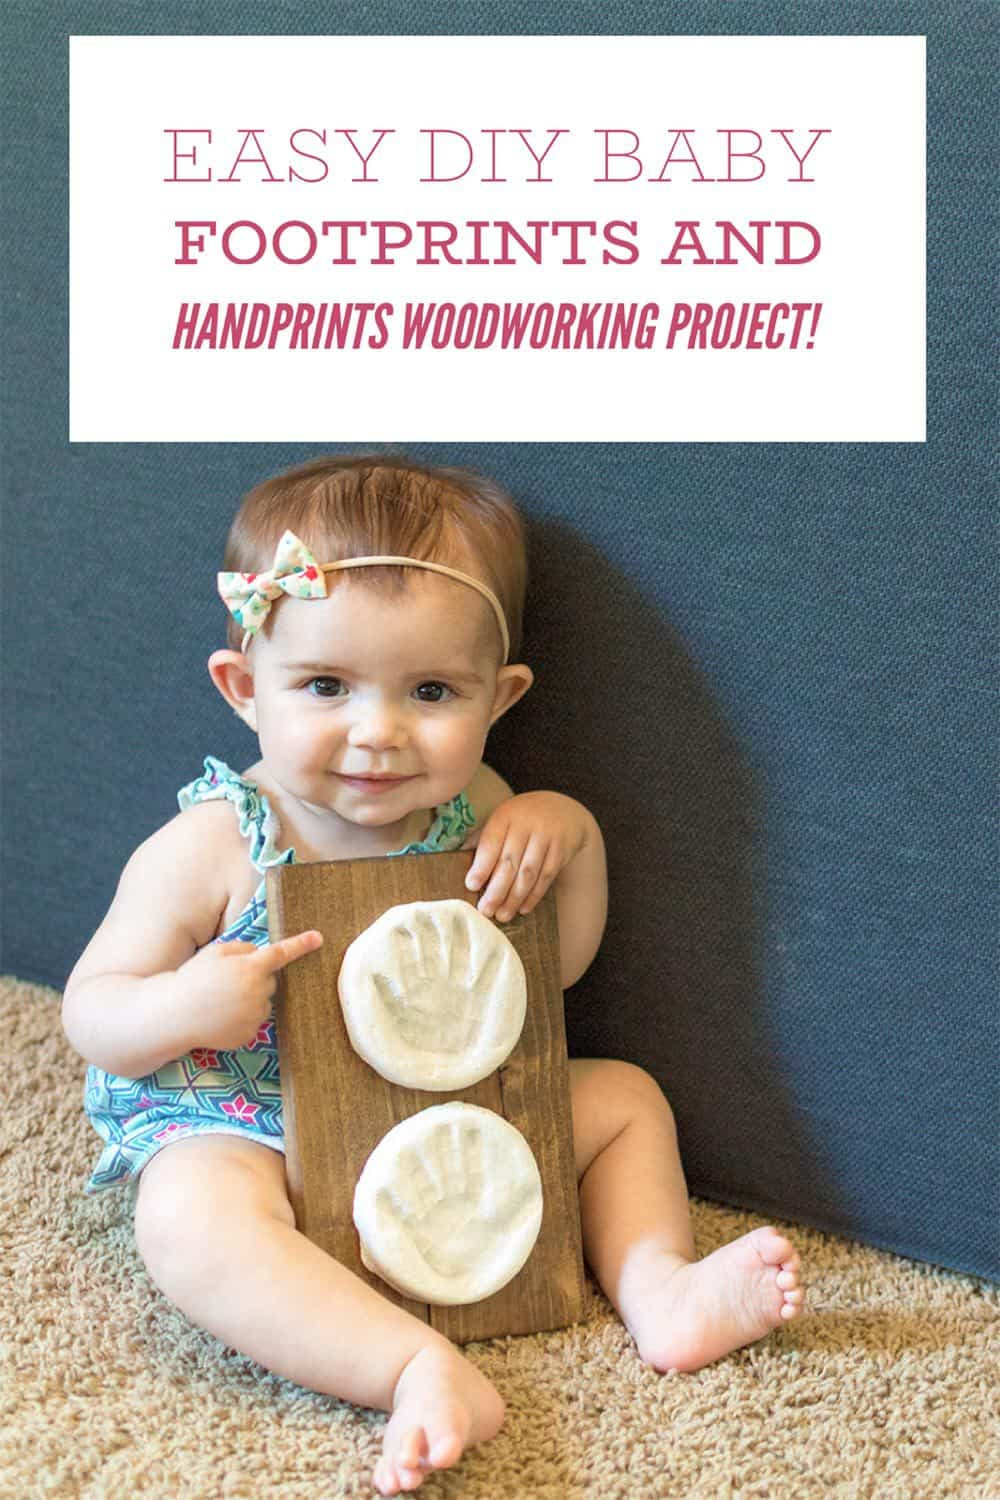 Best ideas about DIY Baby Footprints . Save or Pin Easy DIY Baby Footprints and Handprints Woodworking Project Now.